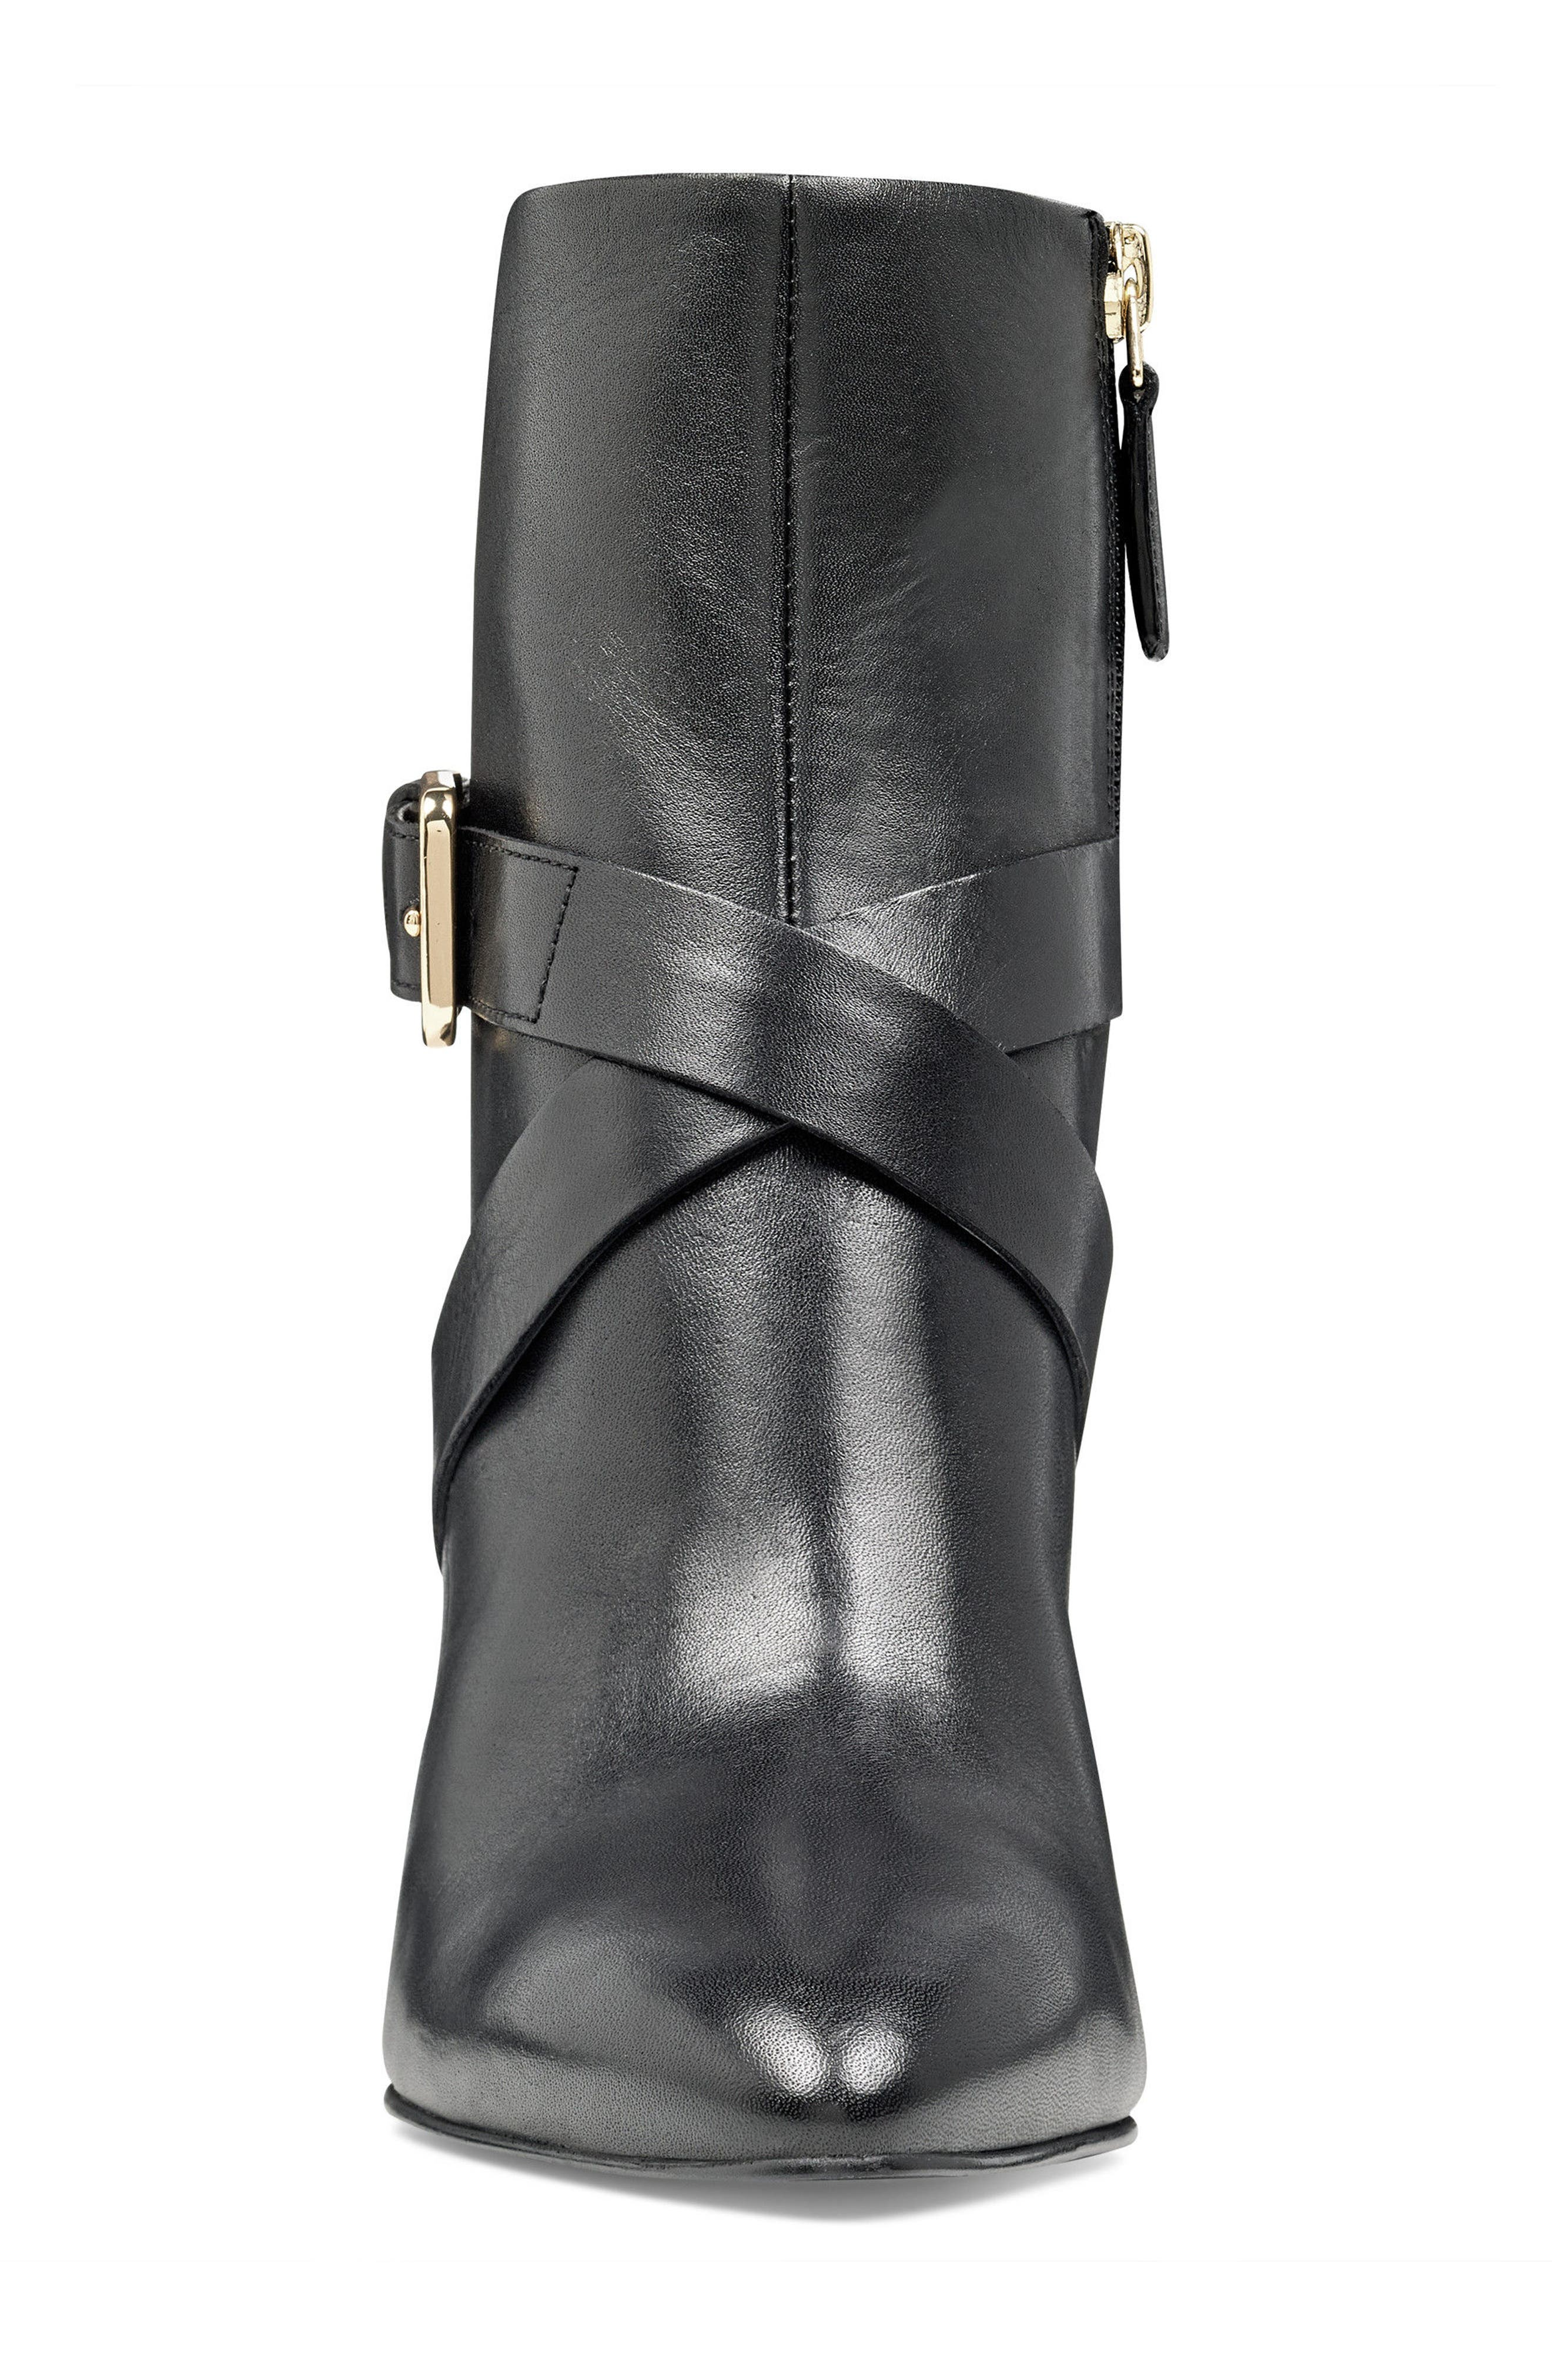 Cavanagh Pointy Toe Bootie,                             Alternate thumbnail 4, color,                             Black Leather